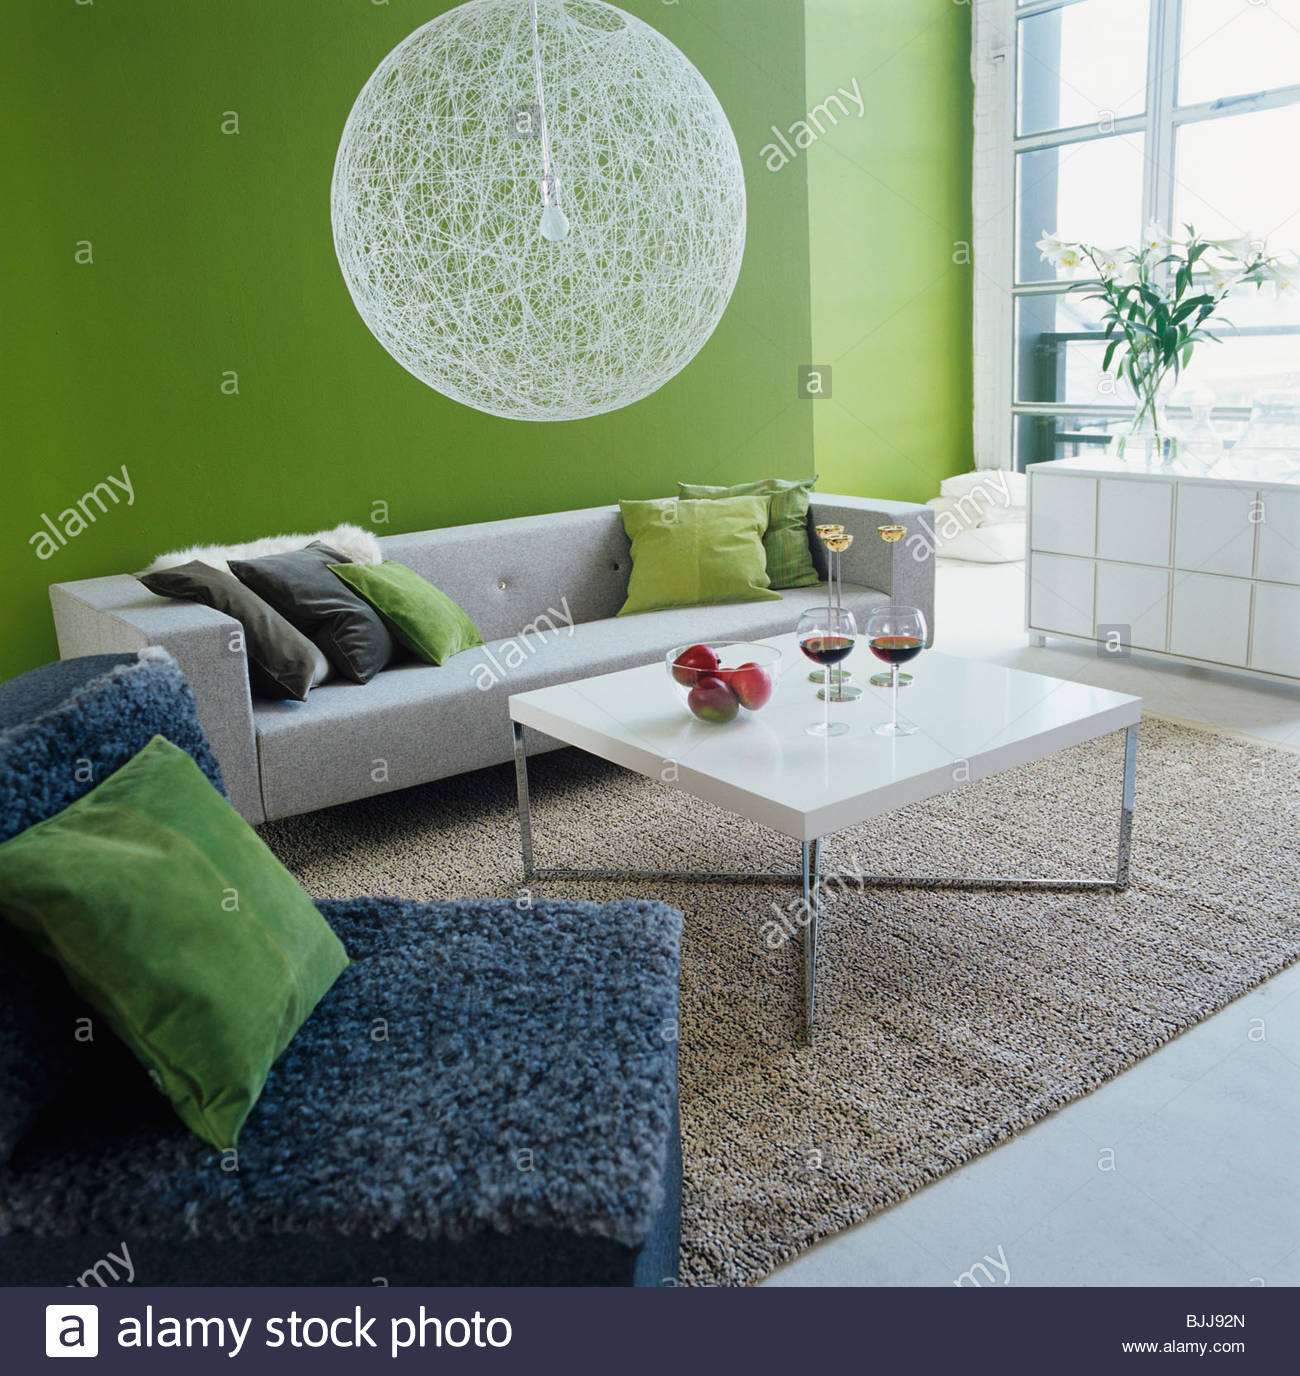 Living Room With Coffee Table, Fruit Bowl U0026 2 Glasses Of Red Wine